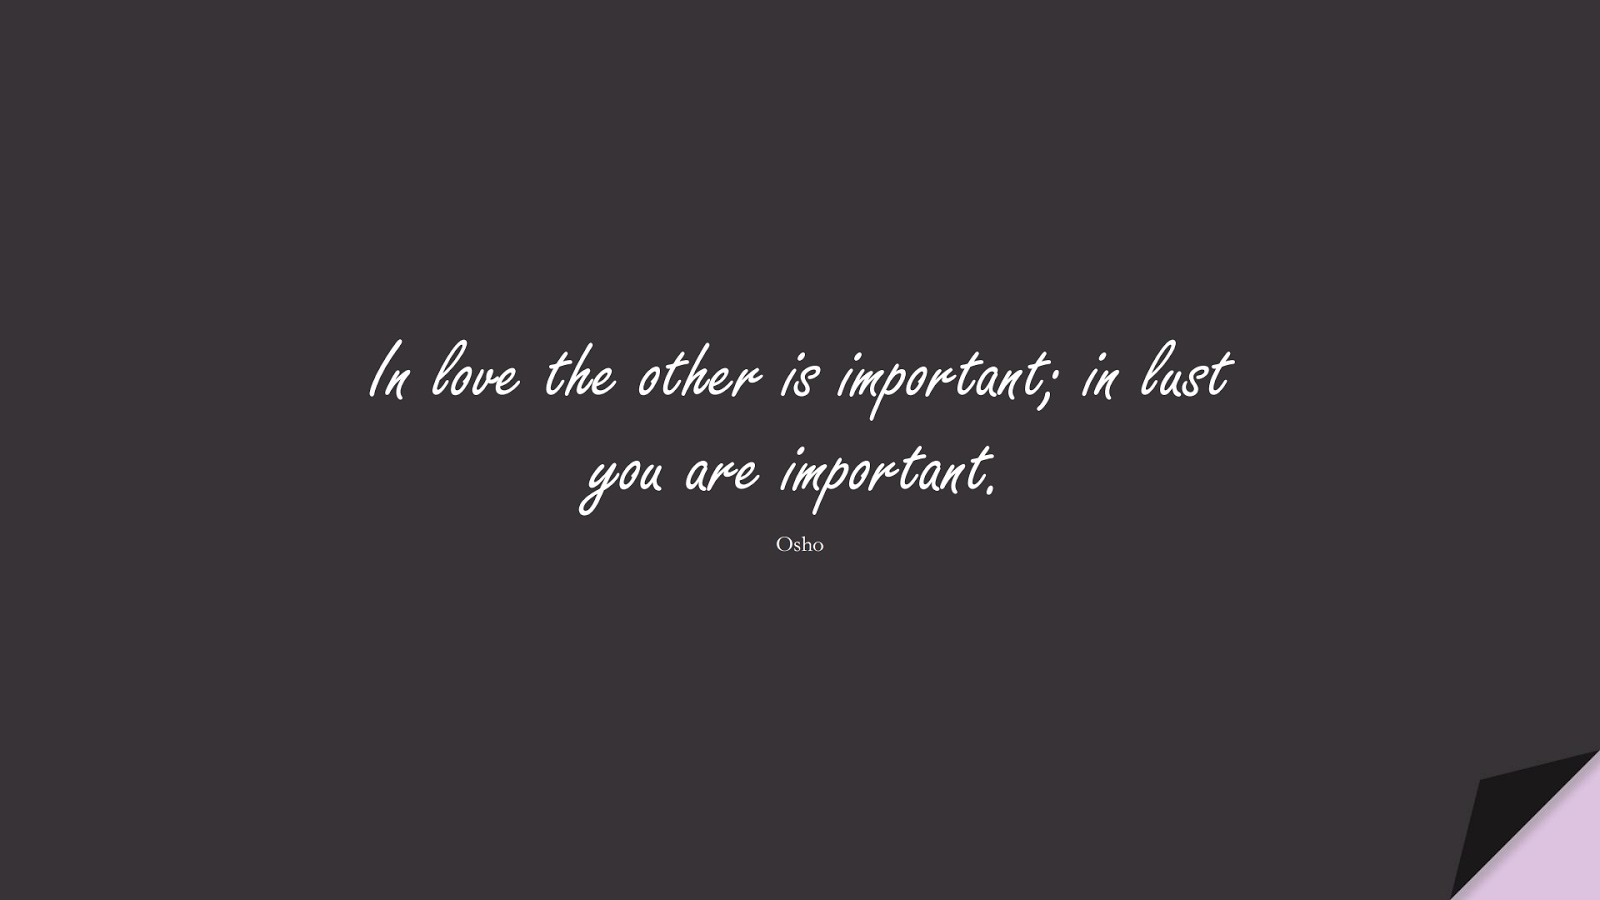 In love the other is important; in lust you are important. (Osho);  #LoveQuotes